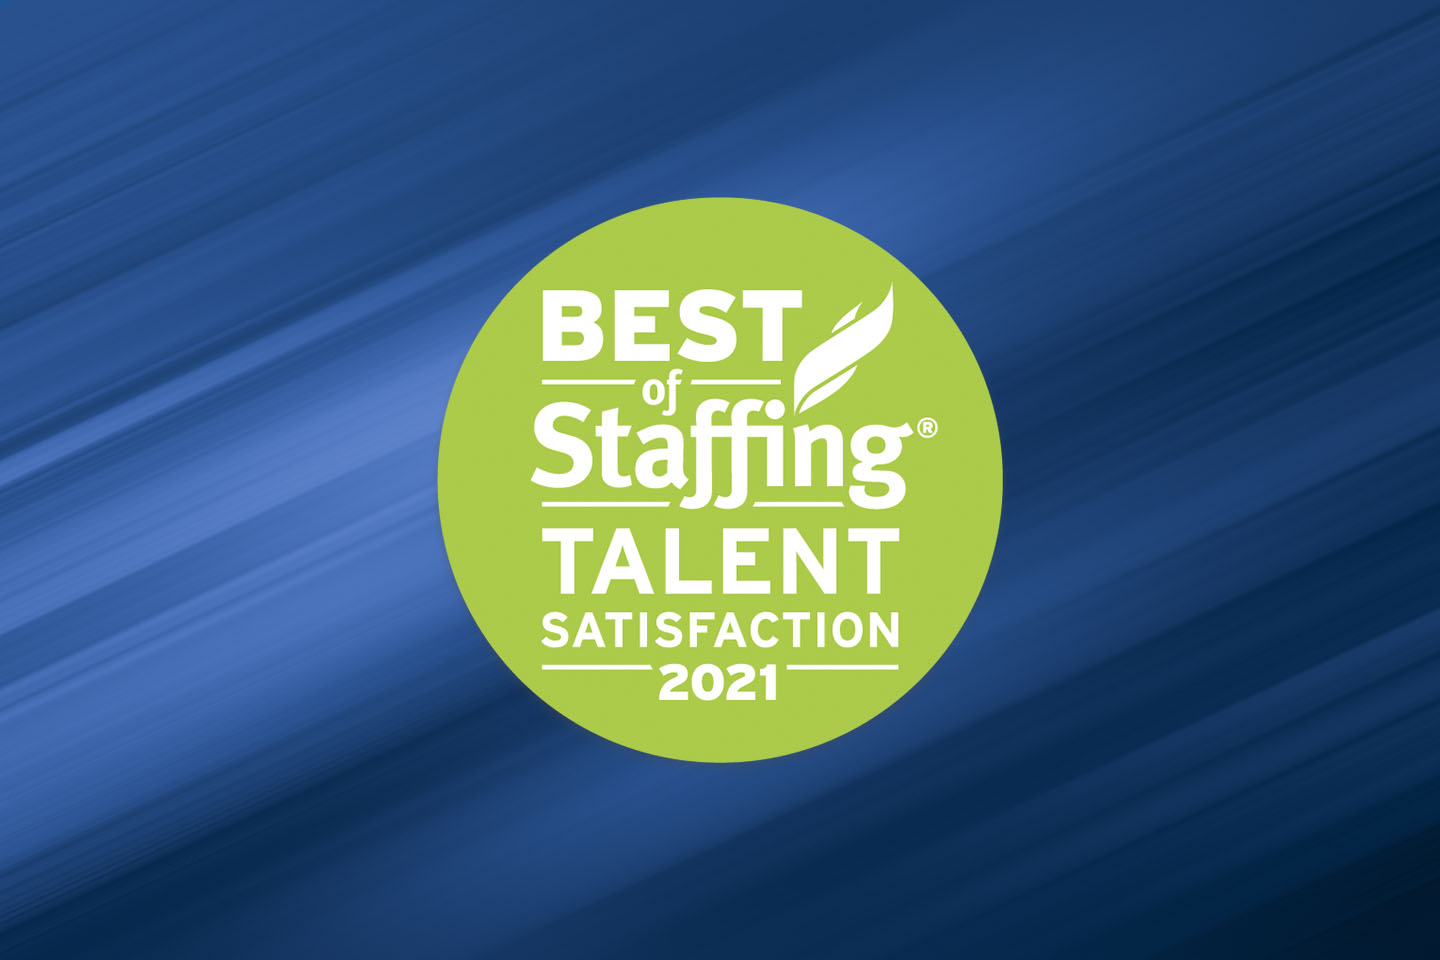 Best of Staffing 2021